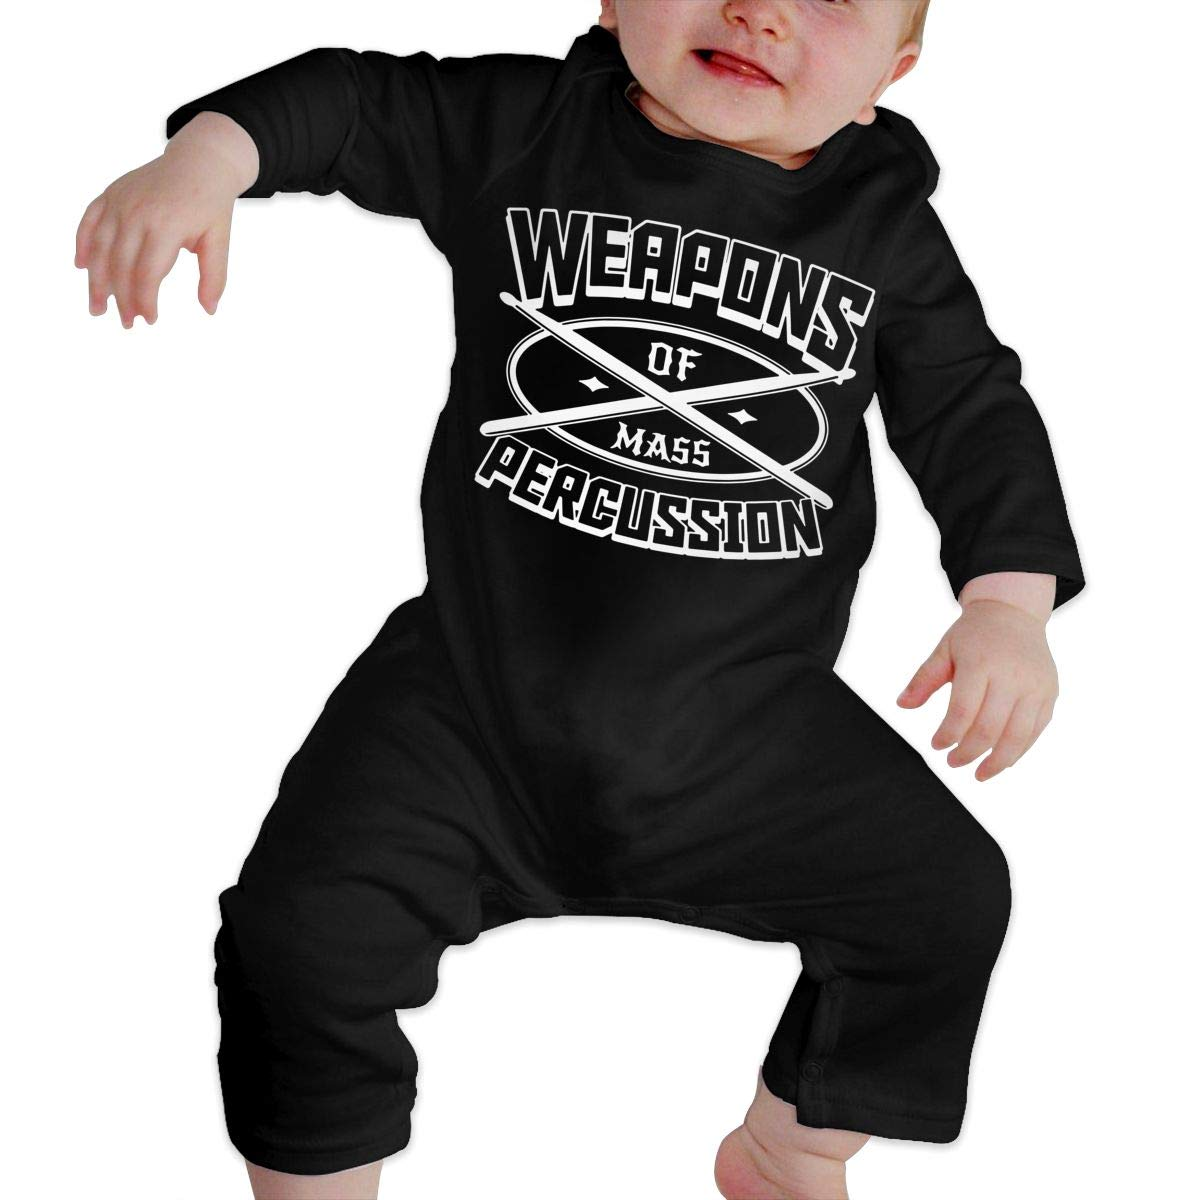 U99oi-9 Long Sleeve Cotton Bodysuit for Unisex Baby Soft Weapon of Mass Percussion Jumpsuit